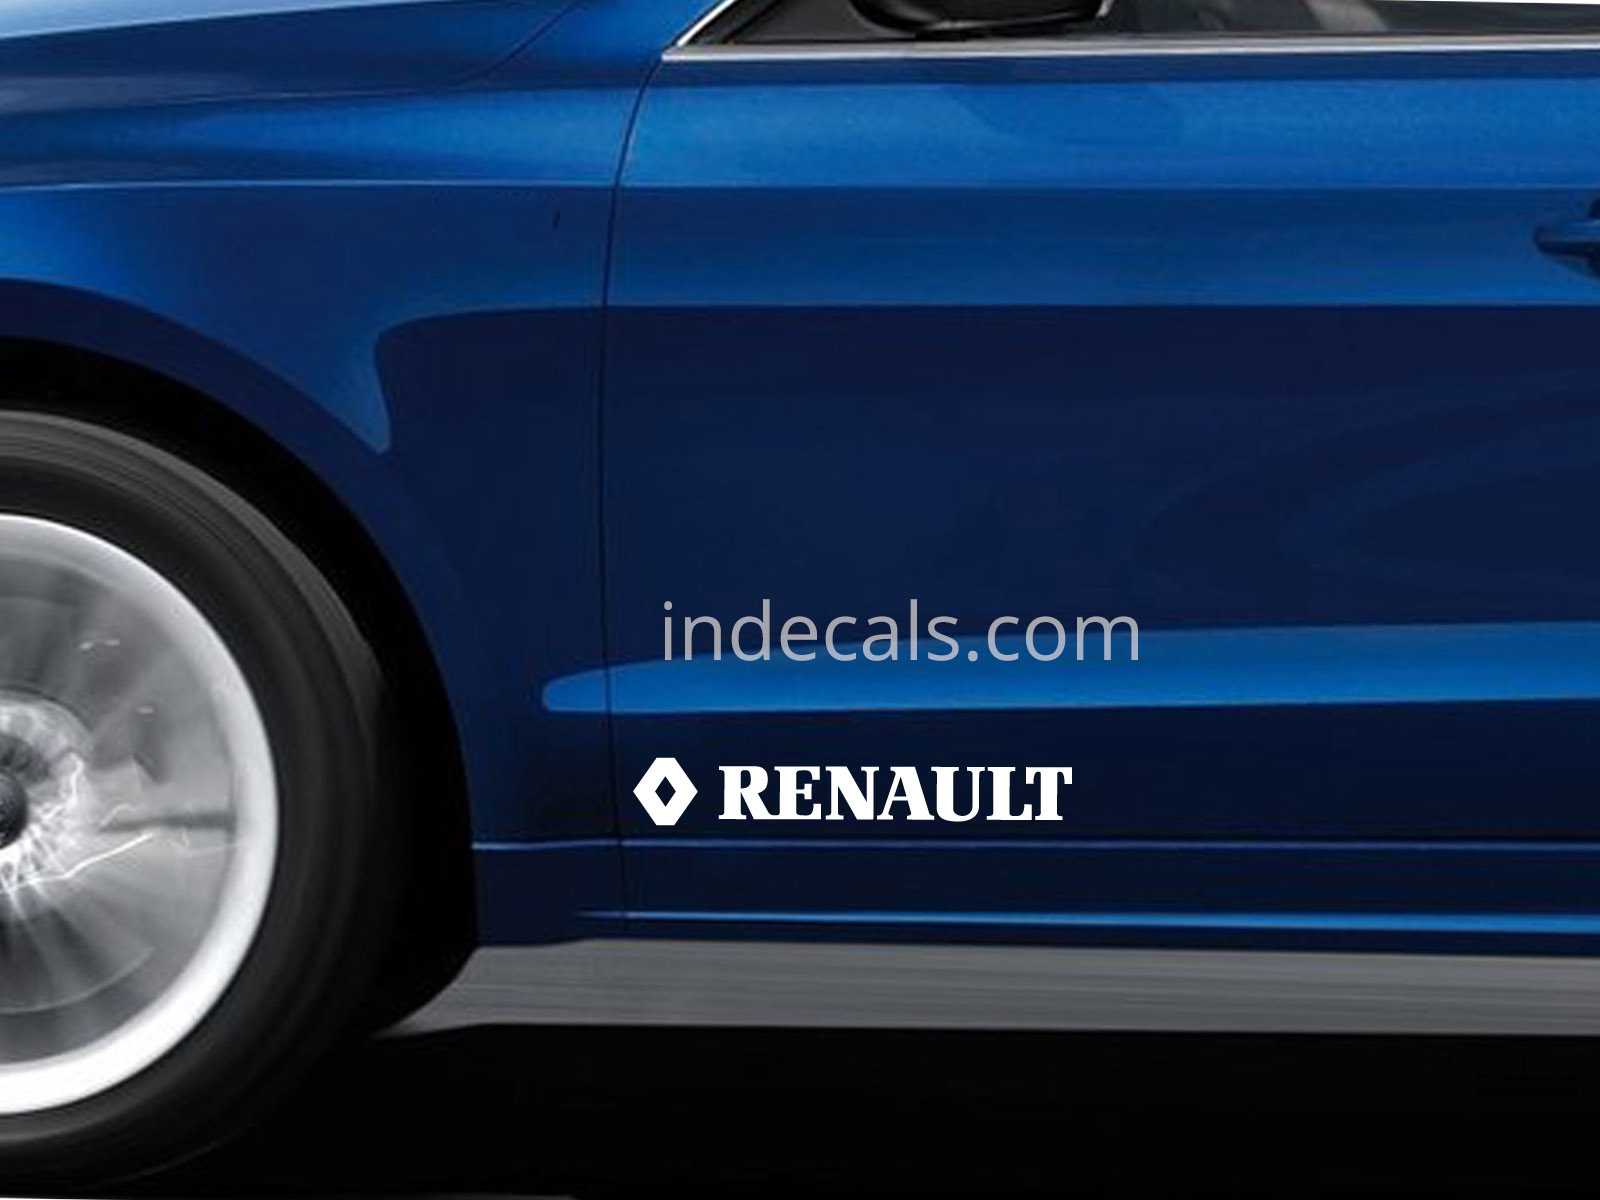 2 x Renault Stickers for Doors Large - White